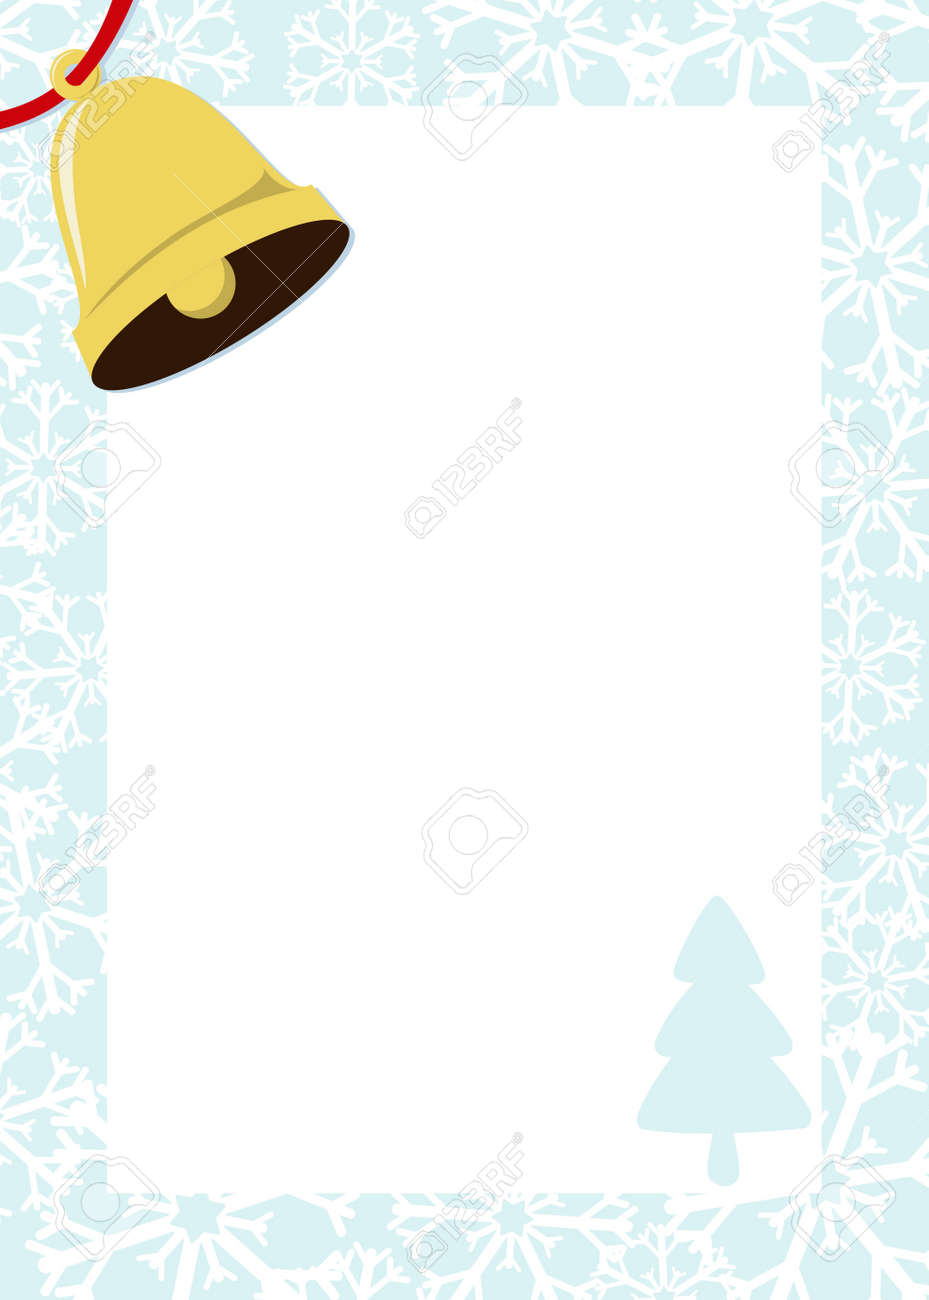 christmas frame with golden bell and white background for your